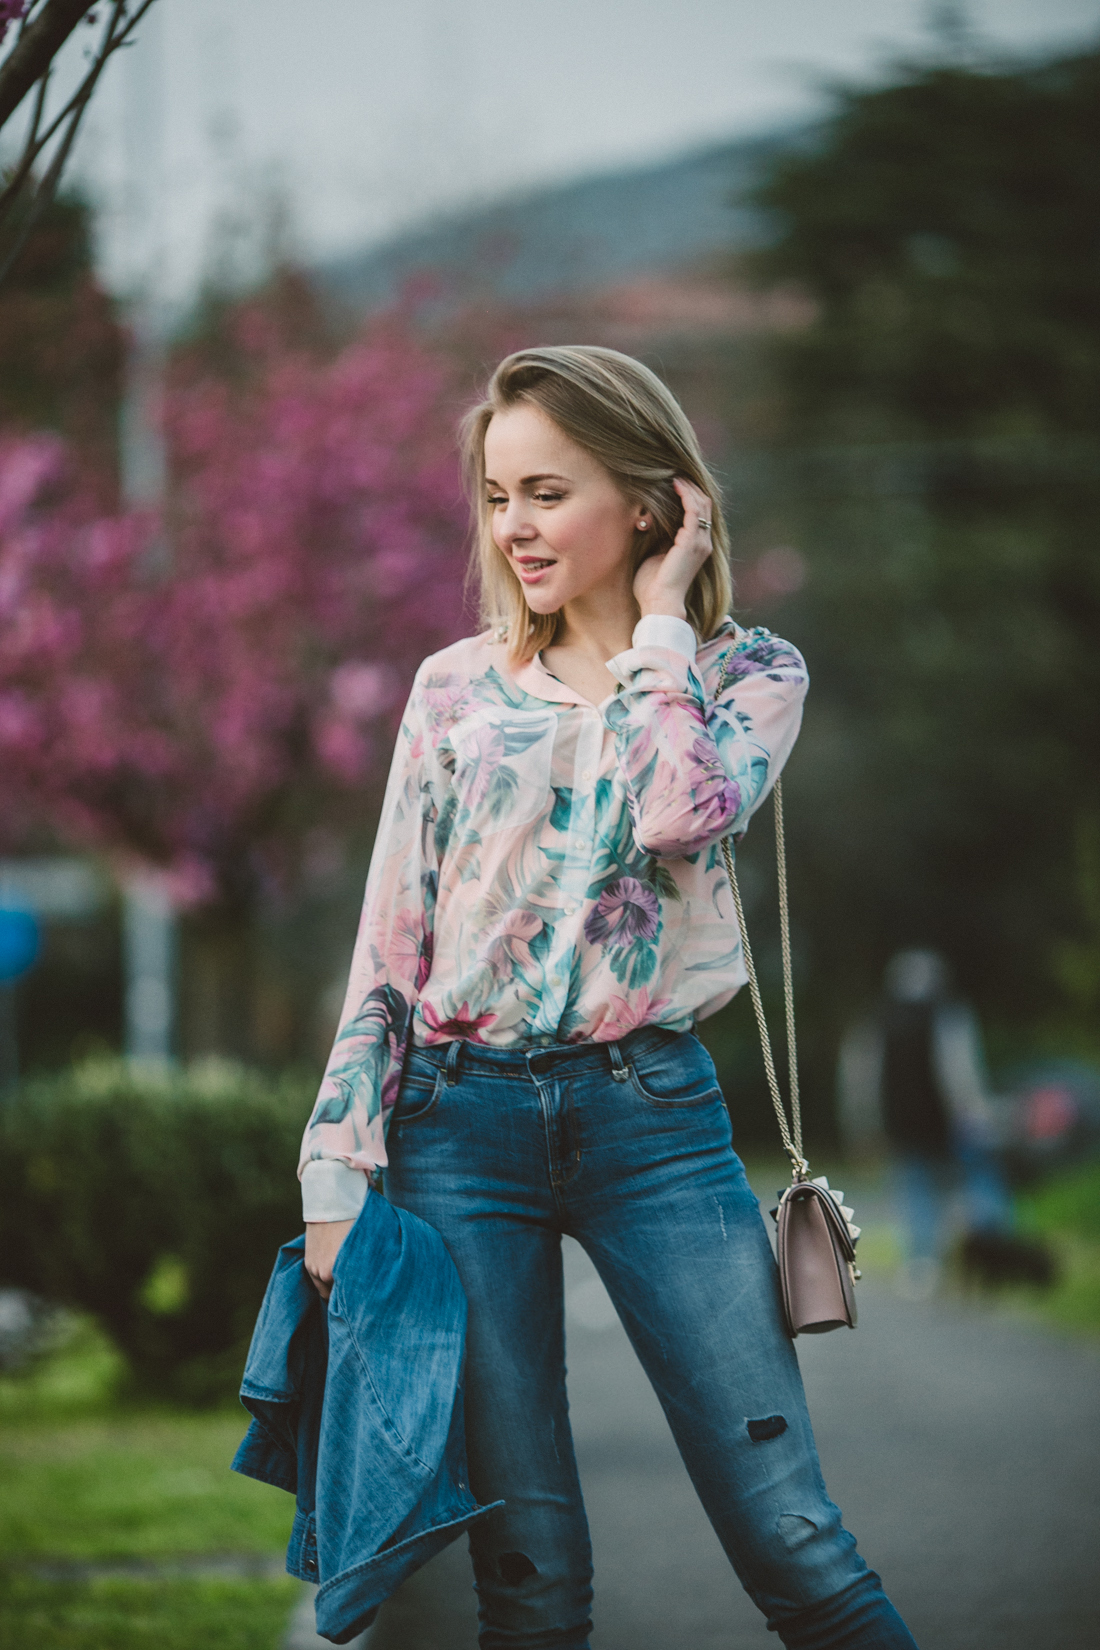 darya kamalova thecablook fashion lifestyle russian italian blogger wears total guess jeans myguess look with valentino rockstud glamrock cipria pale rose bag-4613